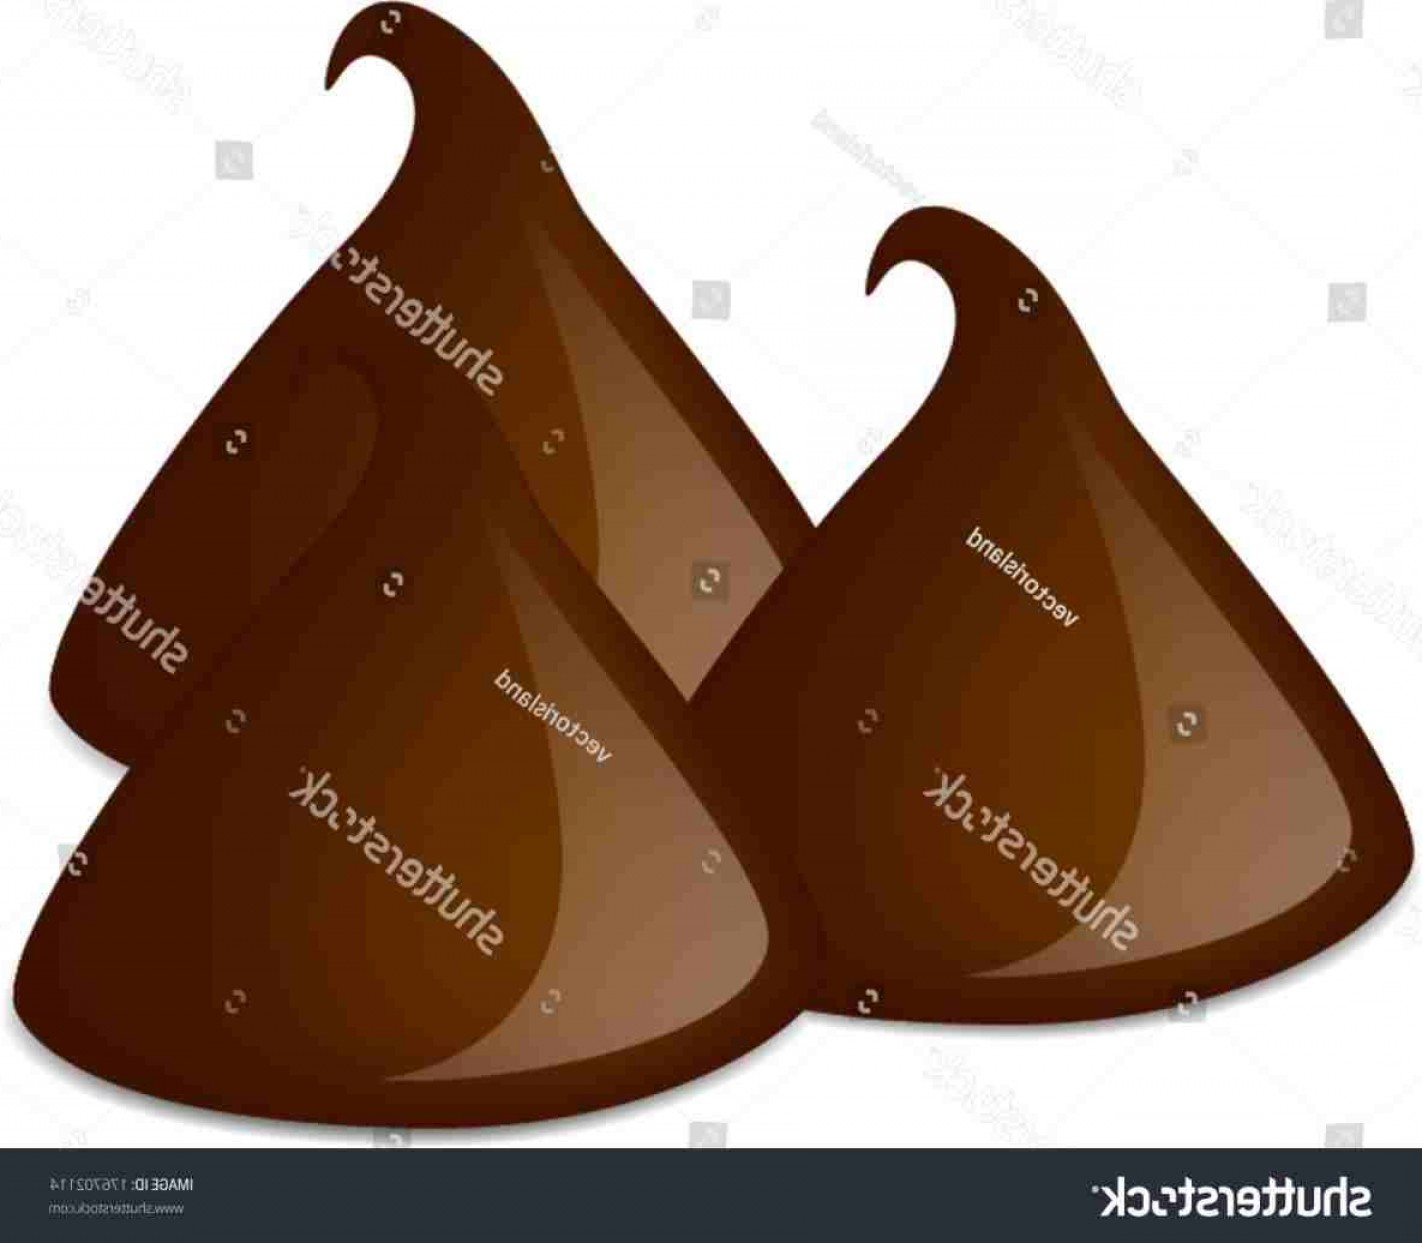 Chocolate Clip Art Vector: Chocolate Chocolate Chips Clipart Chips Stock Vector Jpg